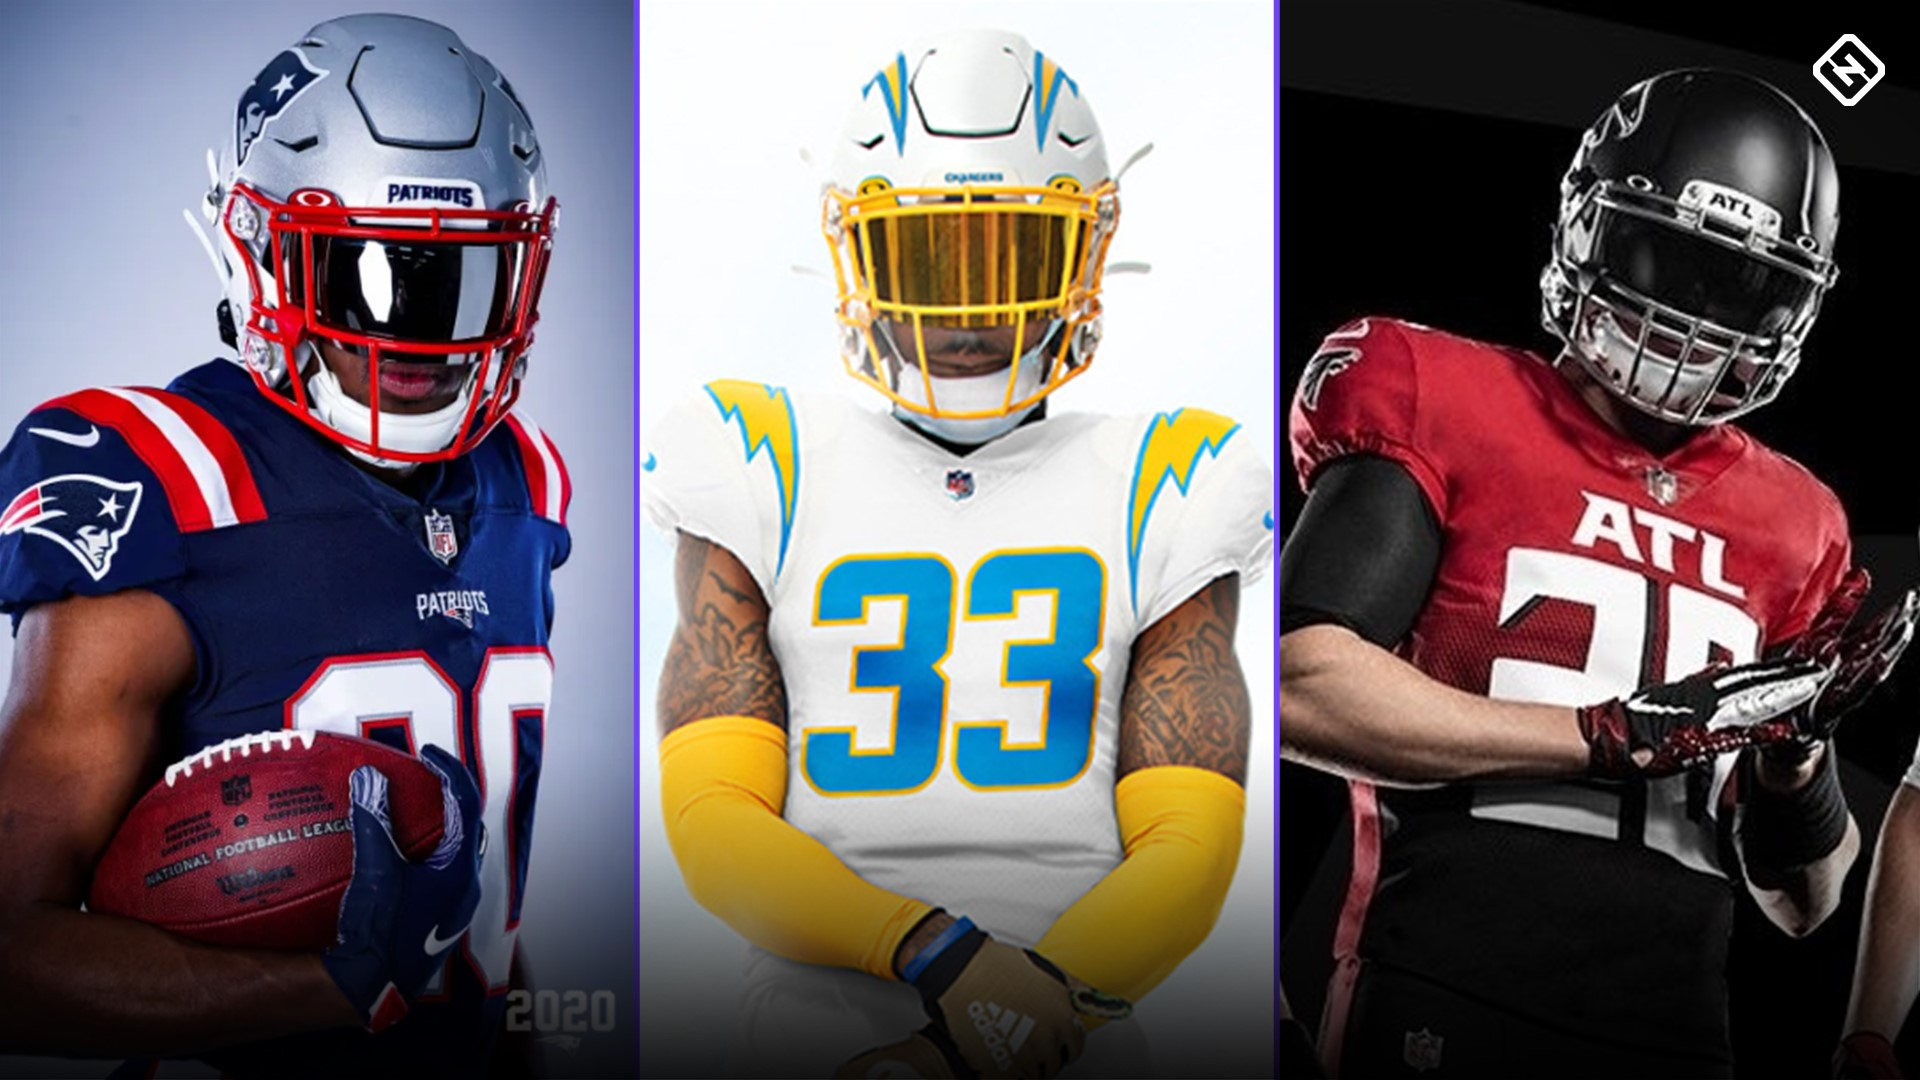 NFL uniform rankings: Patriots, Chargers rise with new looks for 2020; Falcons fall